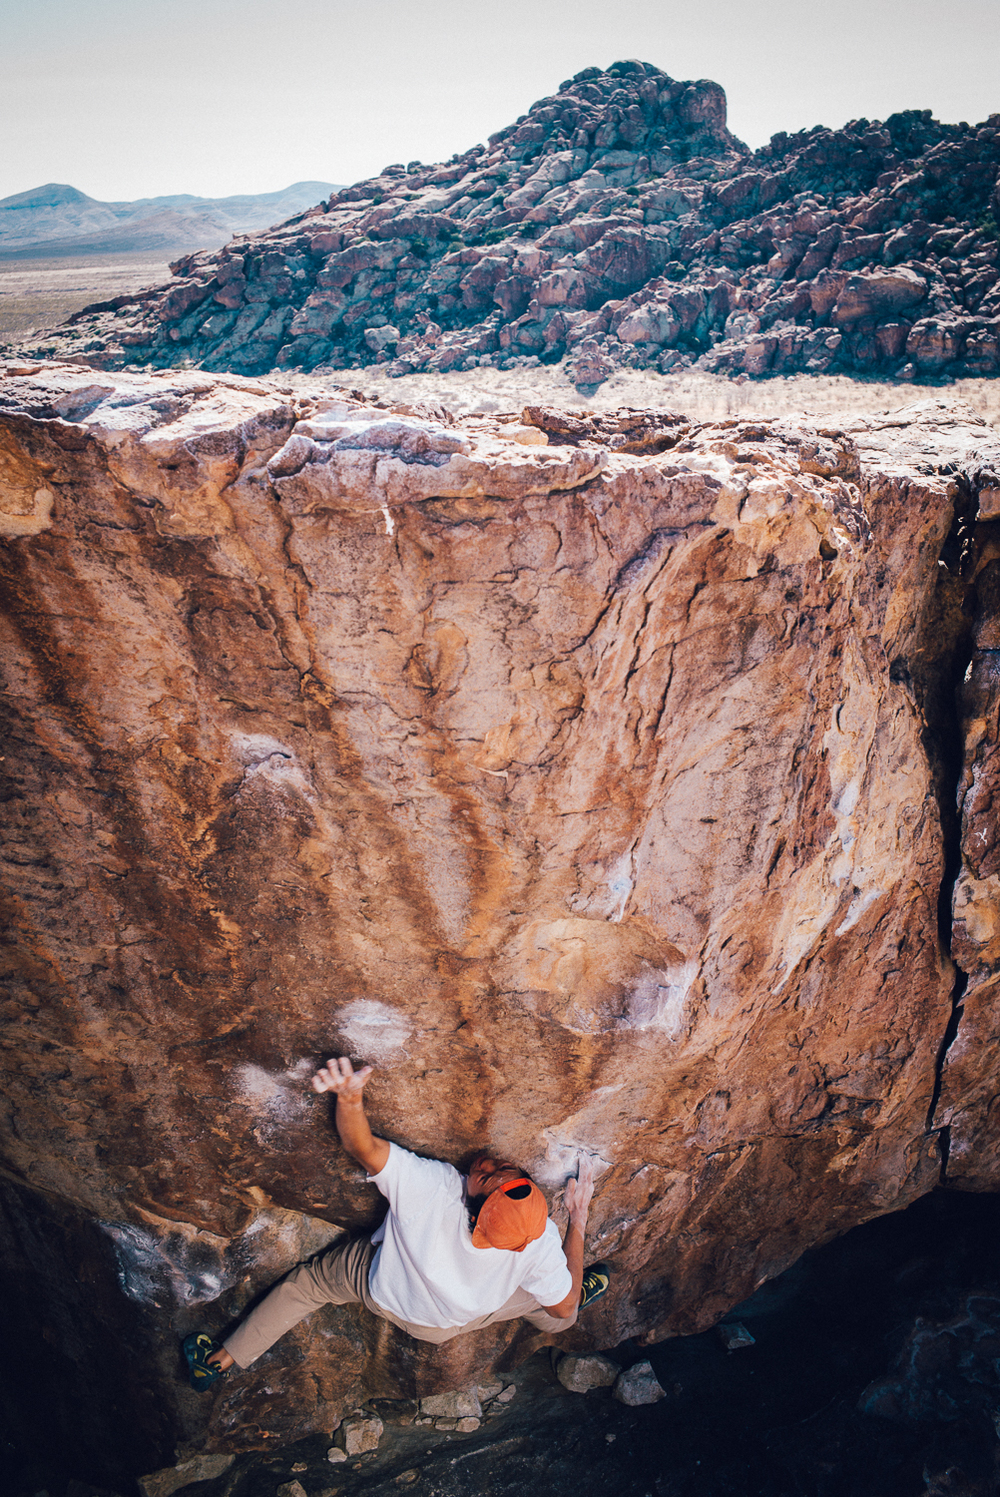 Ben Lim projecting Baby Face, a v7 boulder in Hueco Tanks, El Paso Texas.  Michael Lim Photography 2015 ©